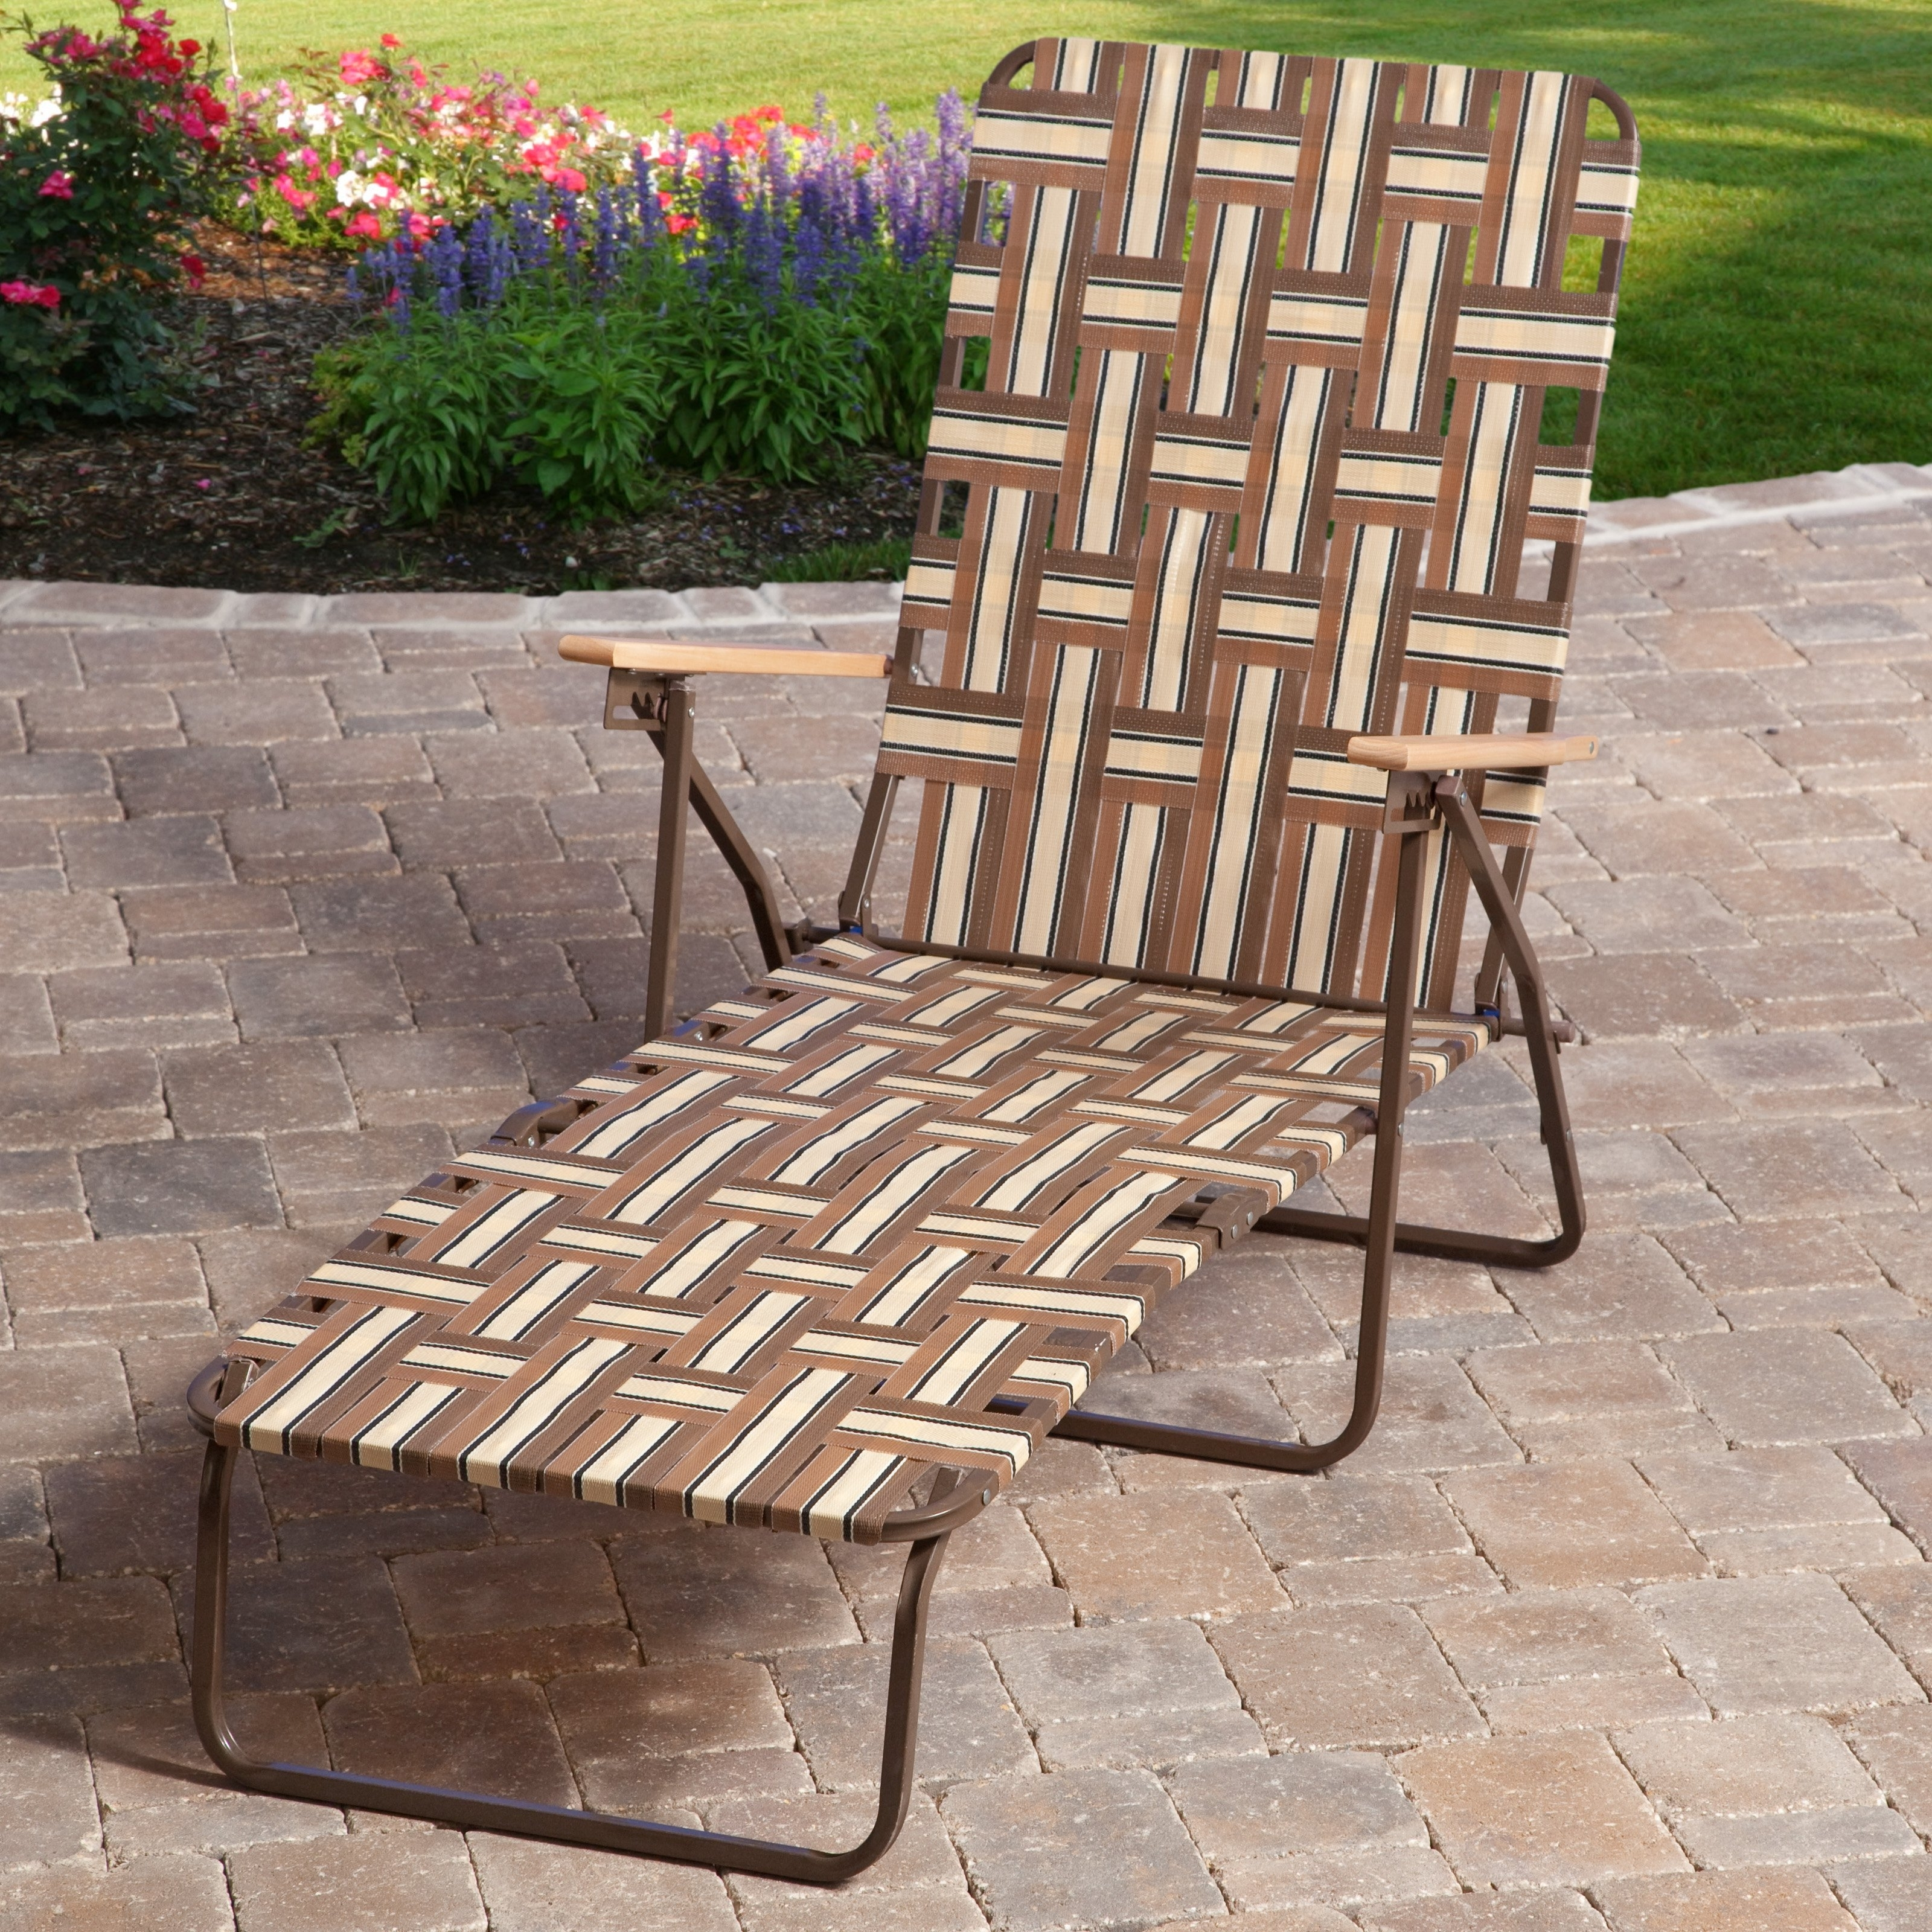 Rio Deluxe Folding Web Chaise Lounge – Walmart For Popular Walmart Outdoor Chaise Lounges (View 10 of 15)